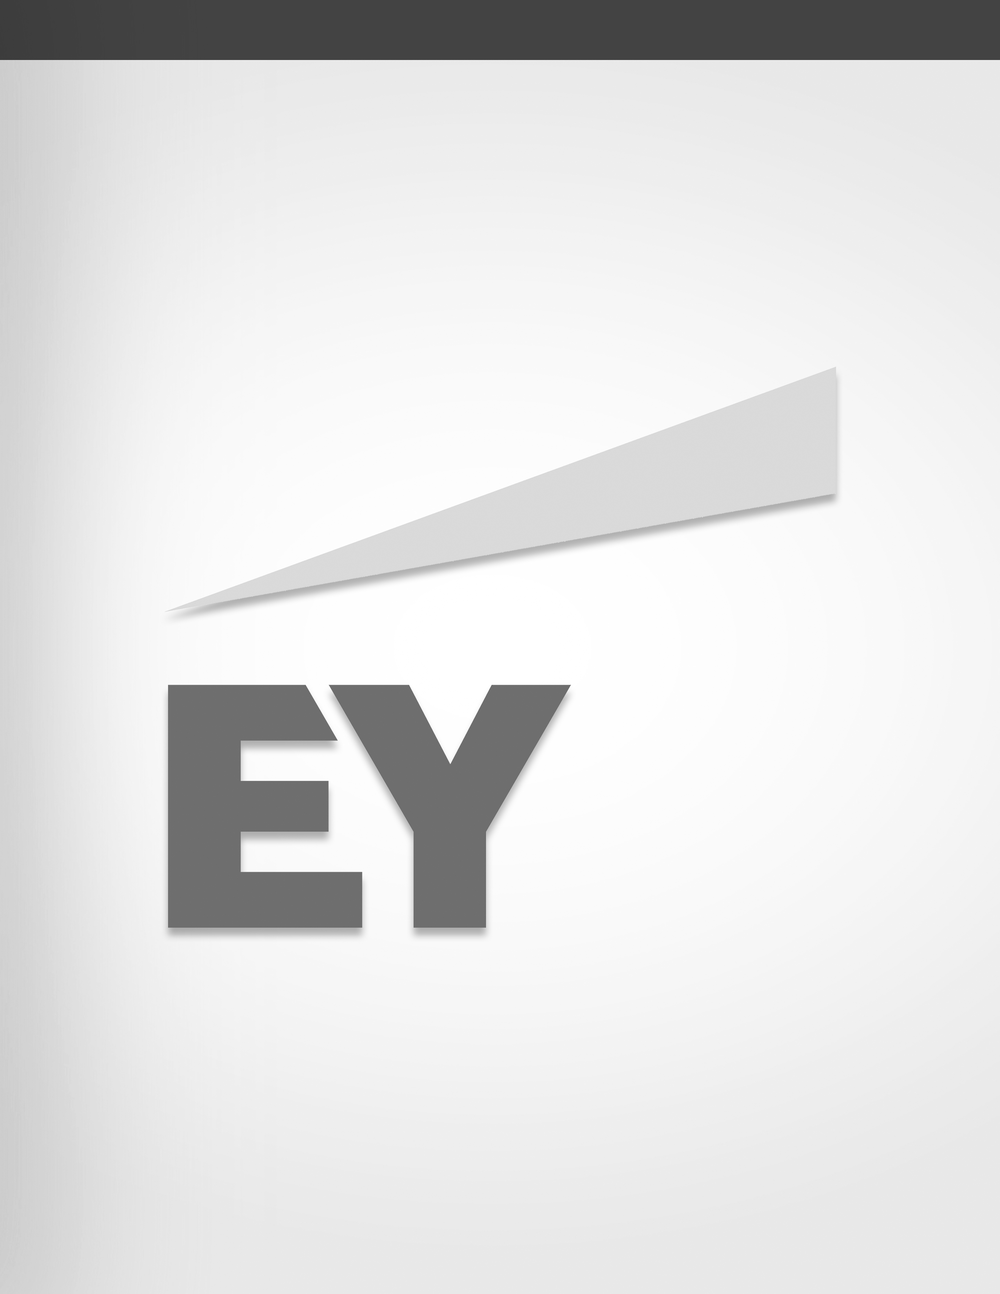 M&A Firepower Report  (Ernst & Young)